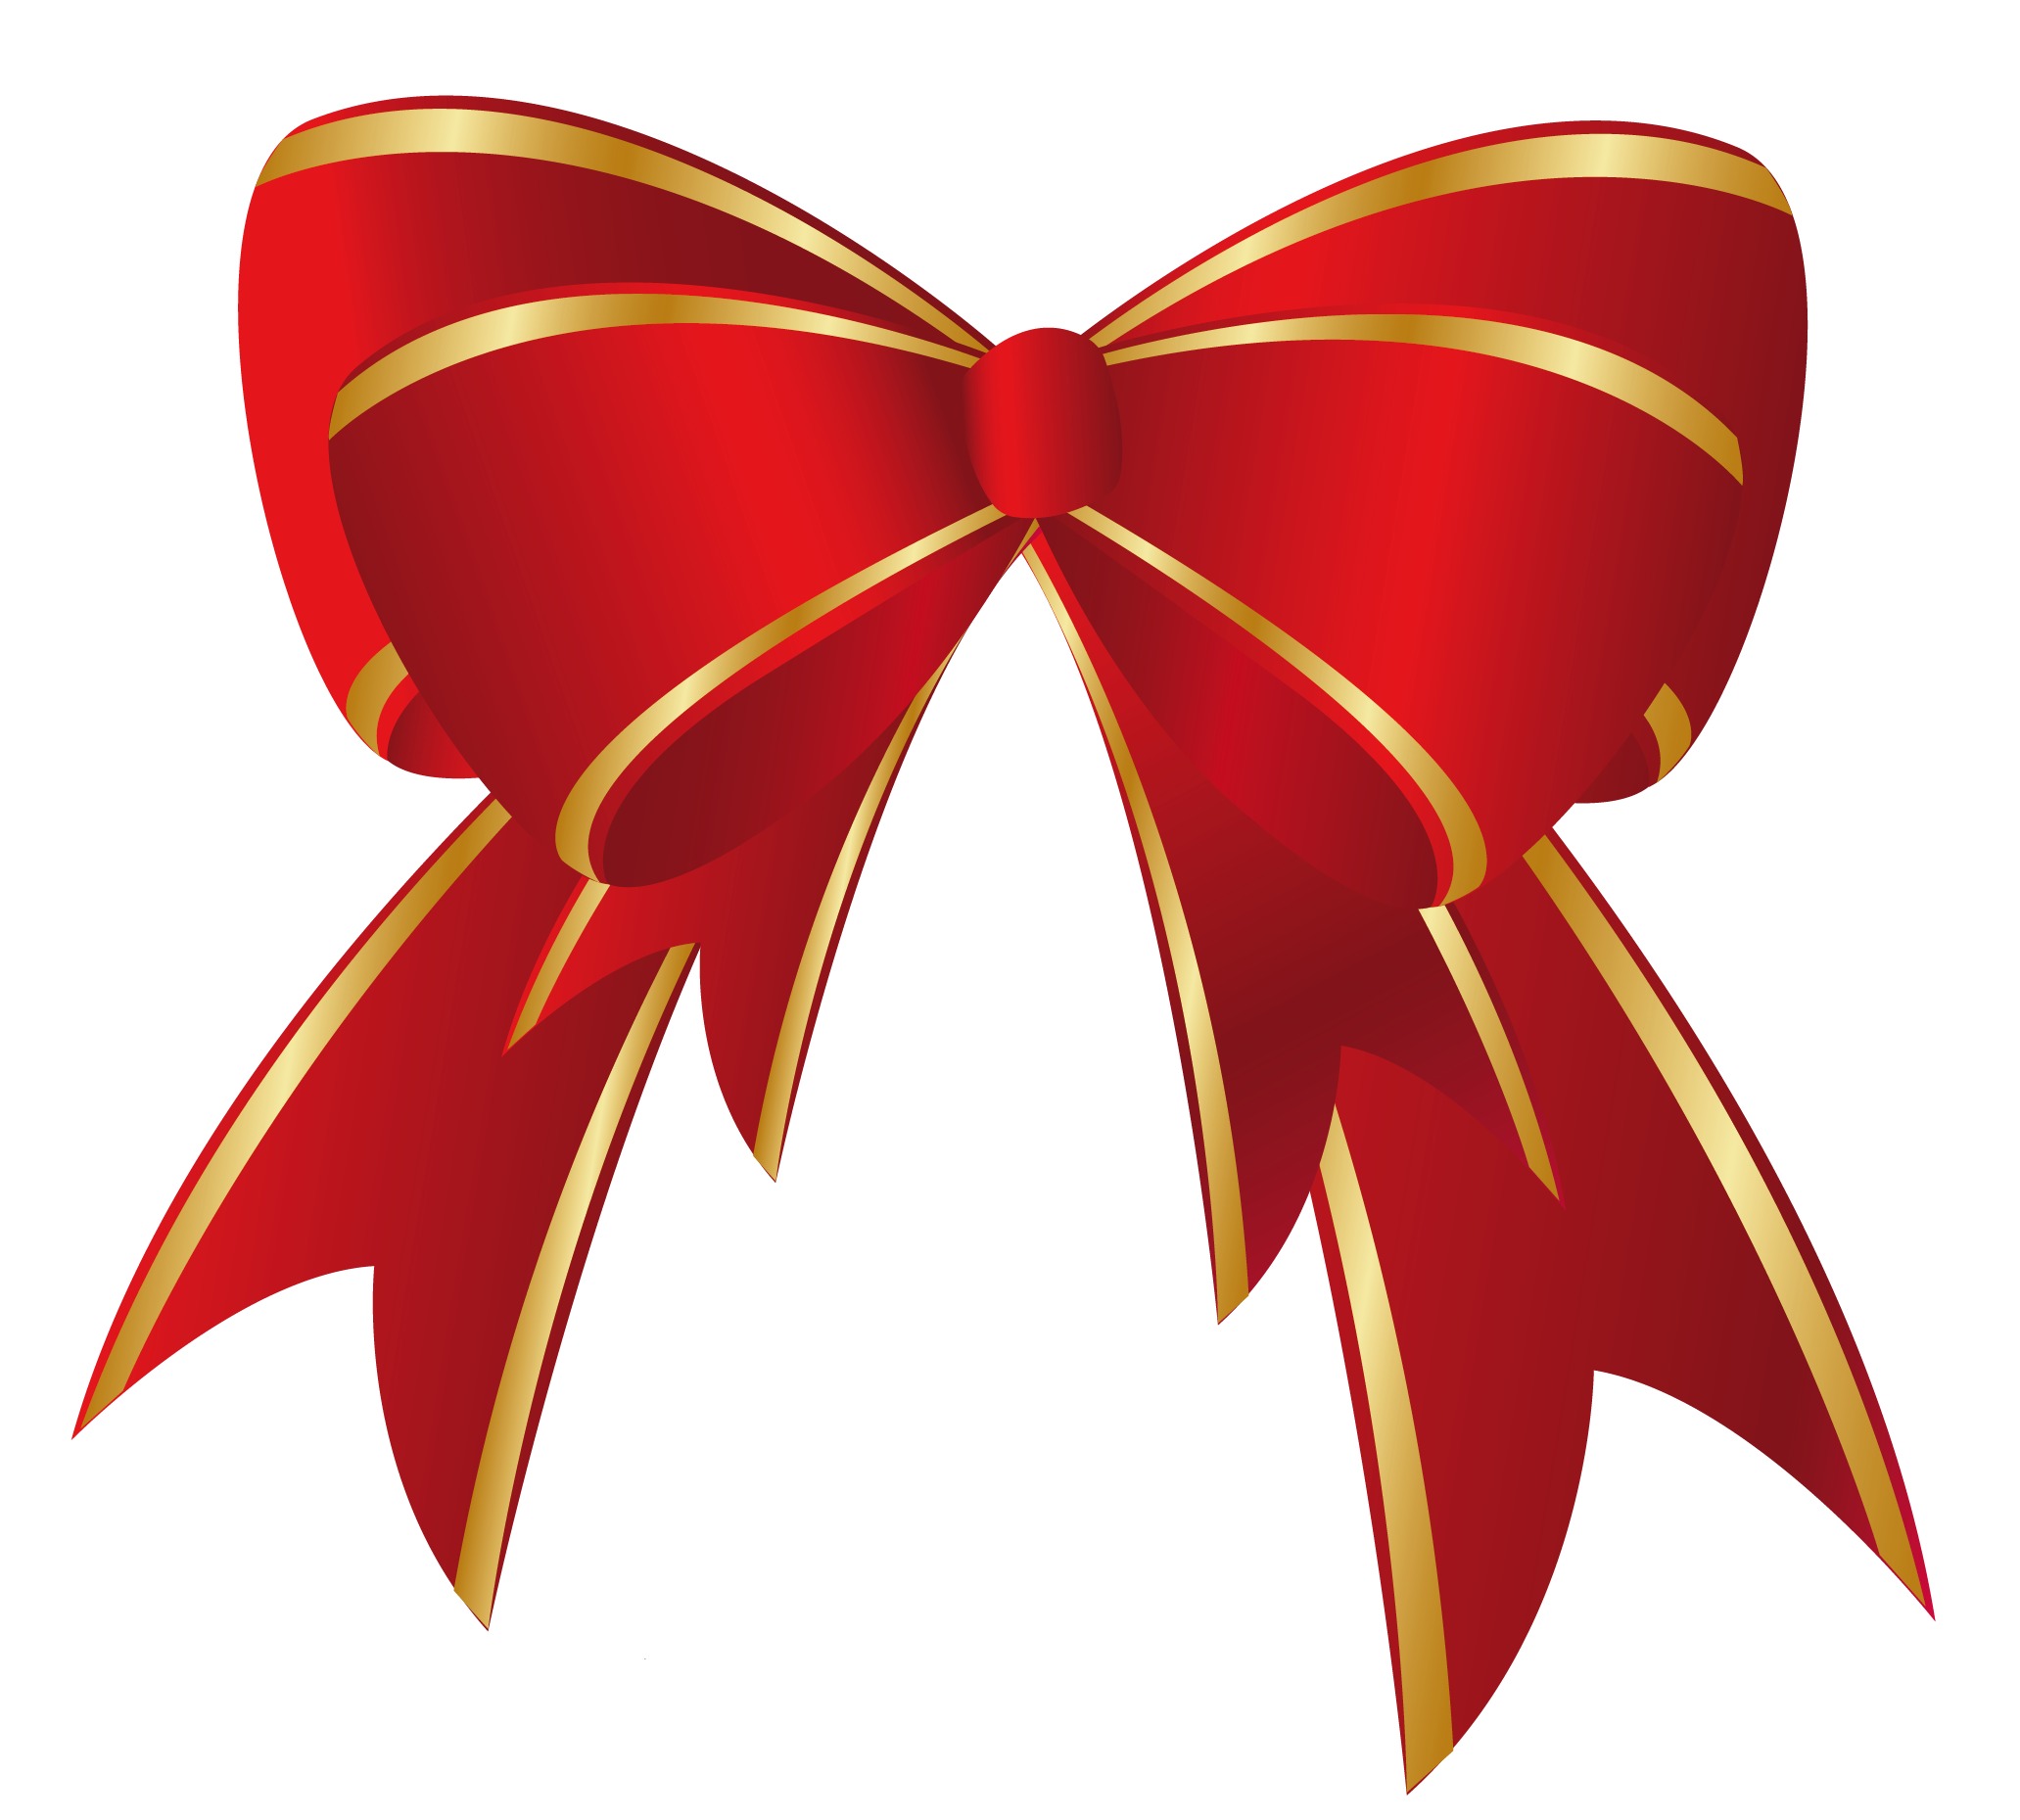 Christmas bow image clipart clip art black and white stock Pin by pam byrne on clip art | Christmas bows, Red christmas ... clip art black and white stock